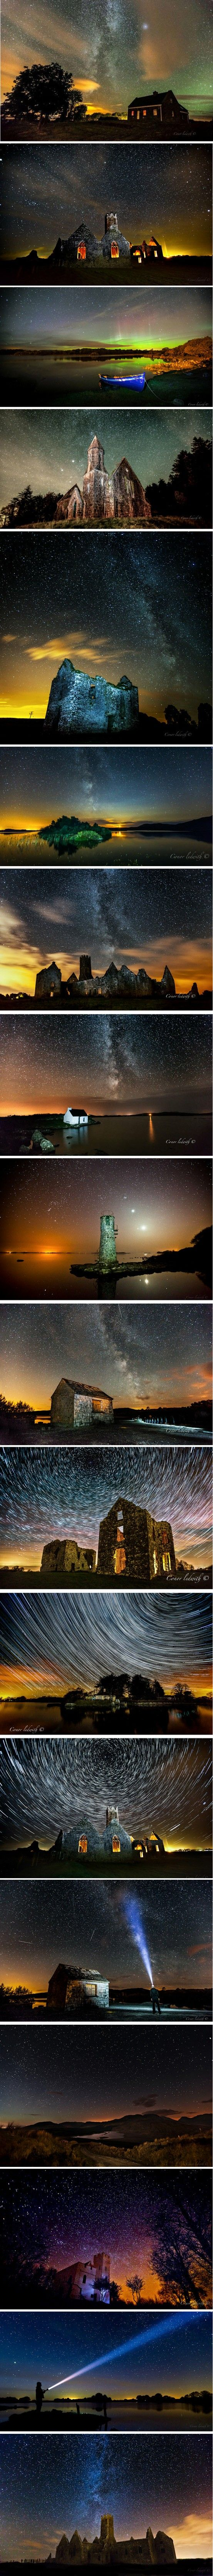 Irish Auroras and Milky Way Landscapes by Conor Ledwith